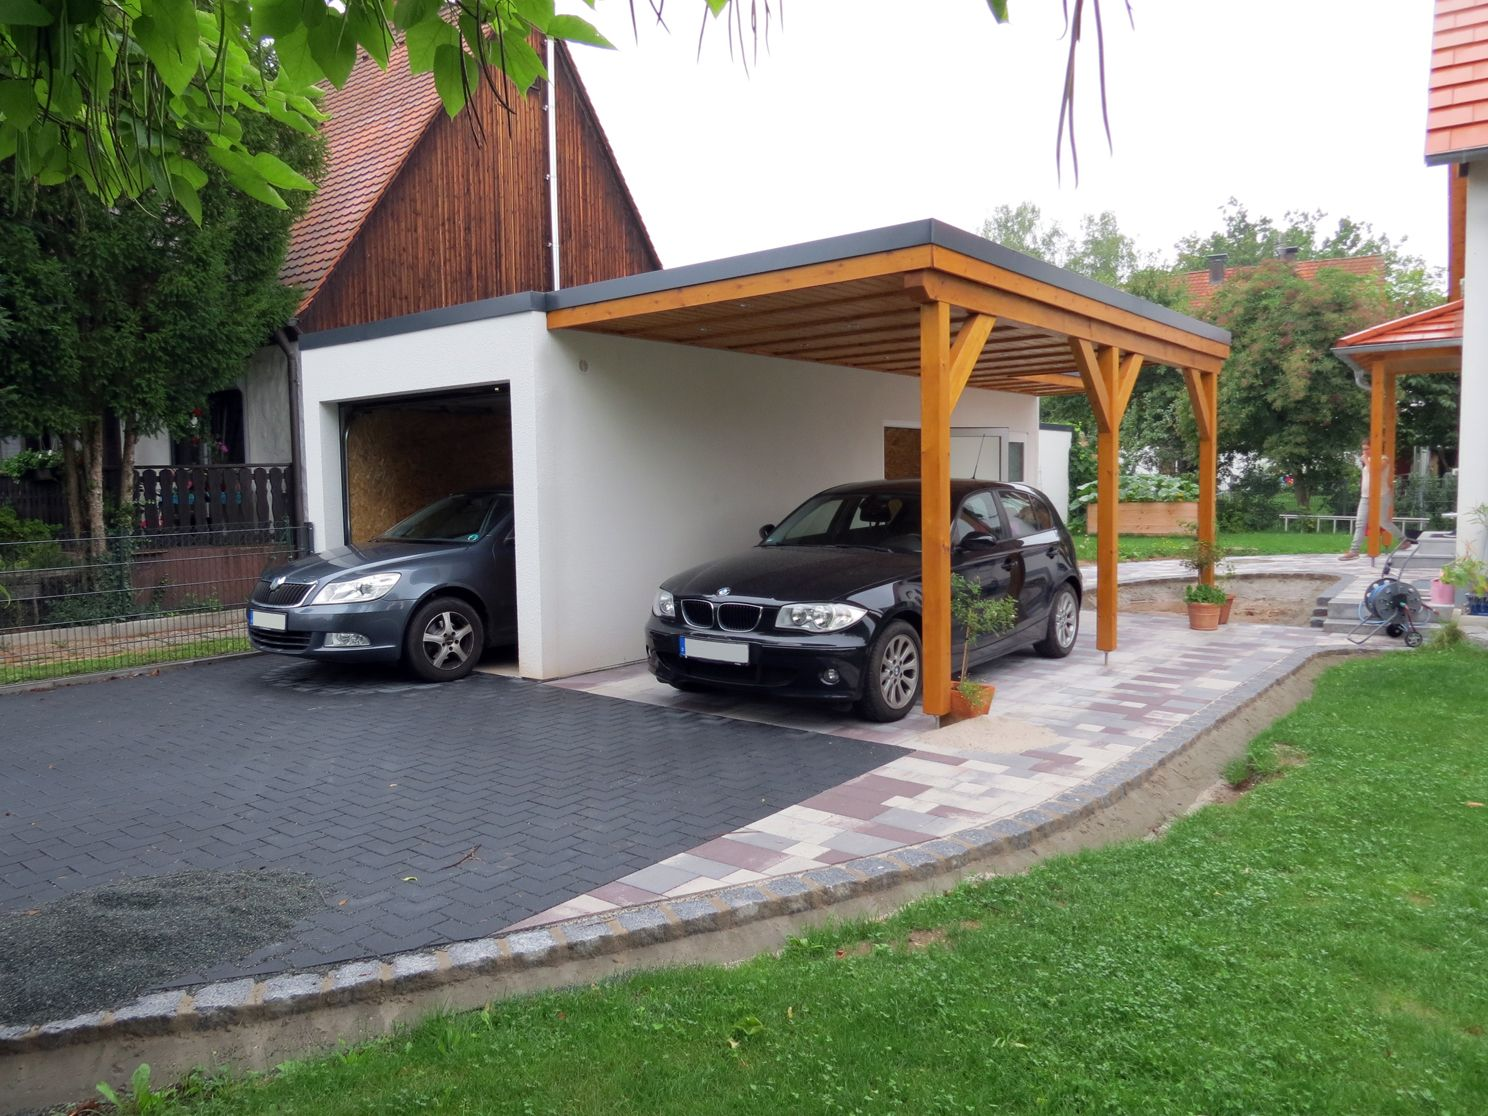 Garage mit carport in holz optik garage carport kombination